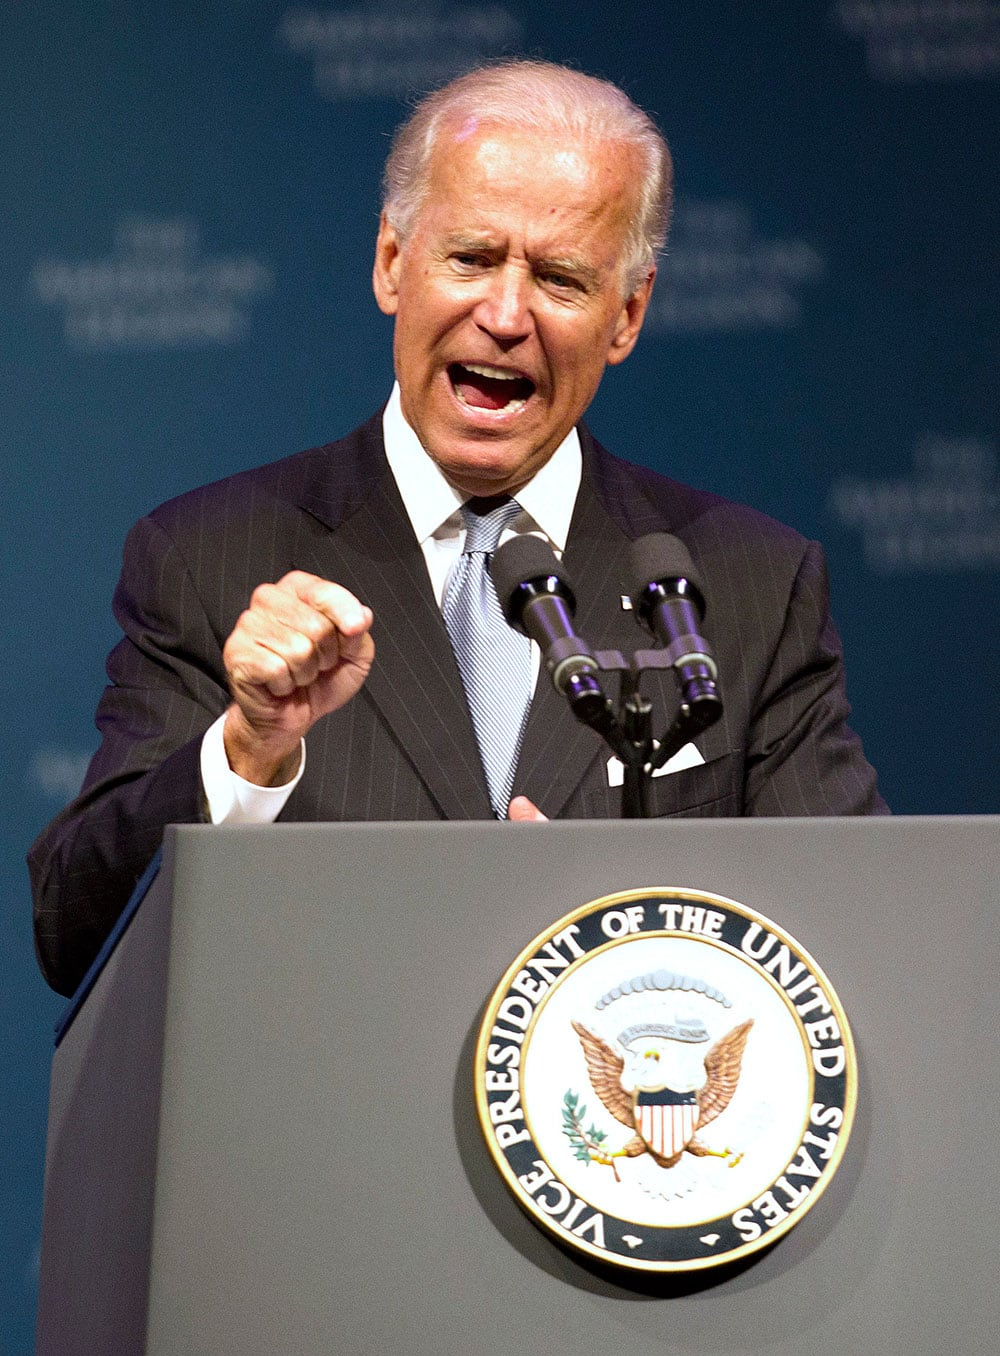 Vice President Joe Biden speaks during The American Legion`s annual convention at the George R. Brown Convention Center in Houston.